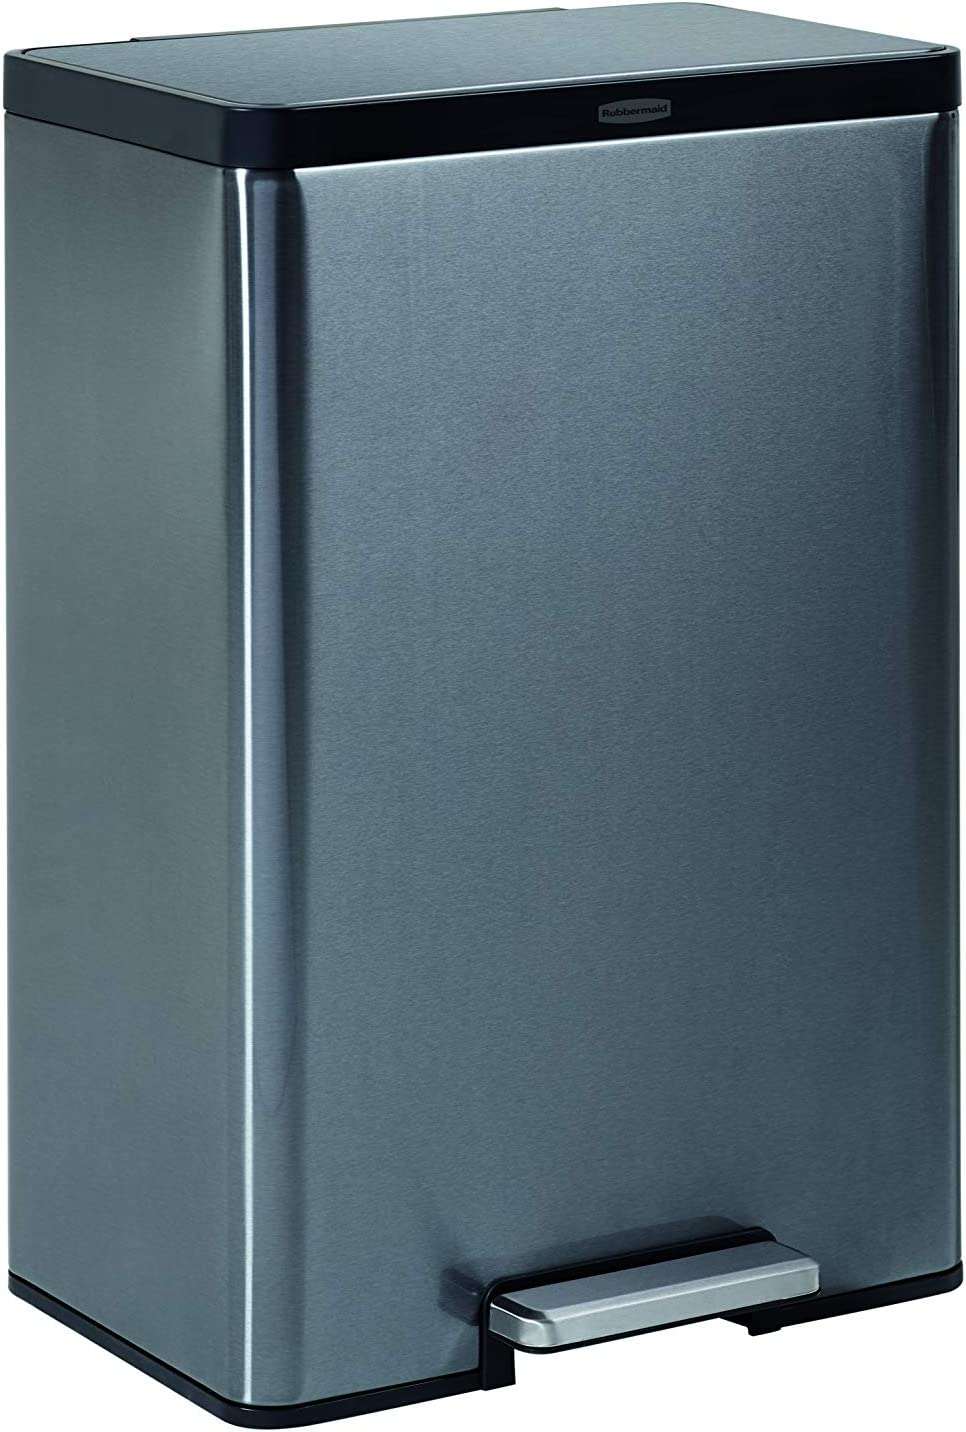 Rubbermaid Stainless Steel Metal Step-On 12G Trash Can for Home and Kitchen, Charcoal